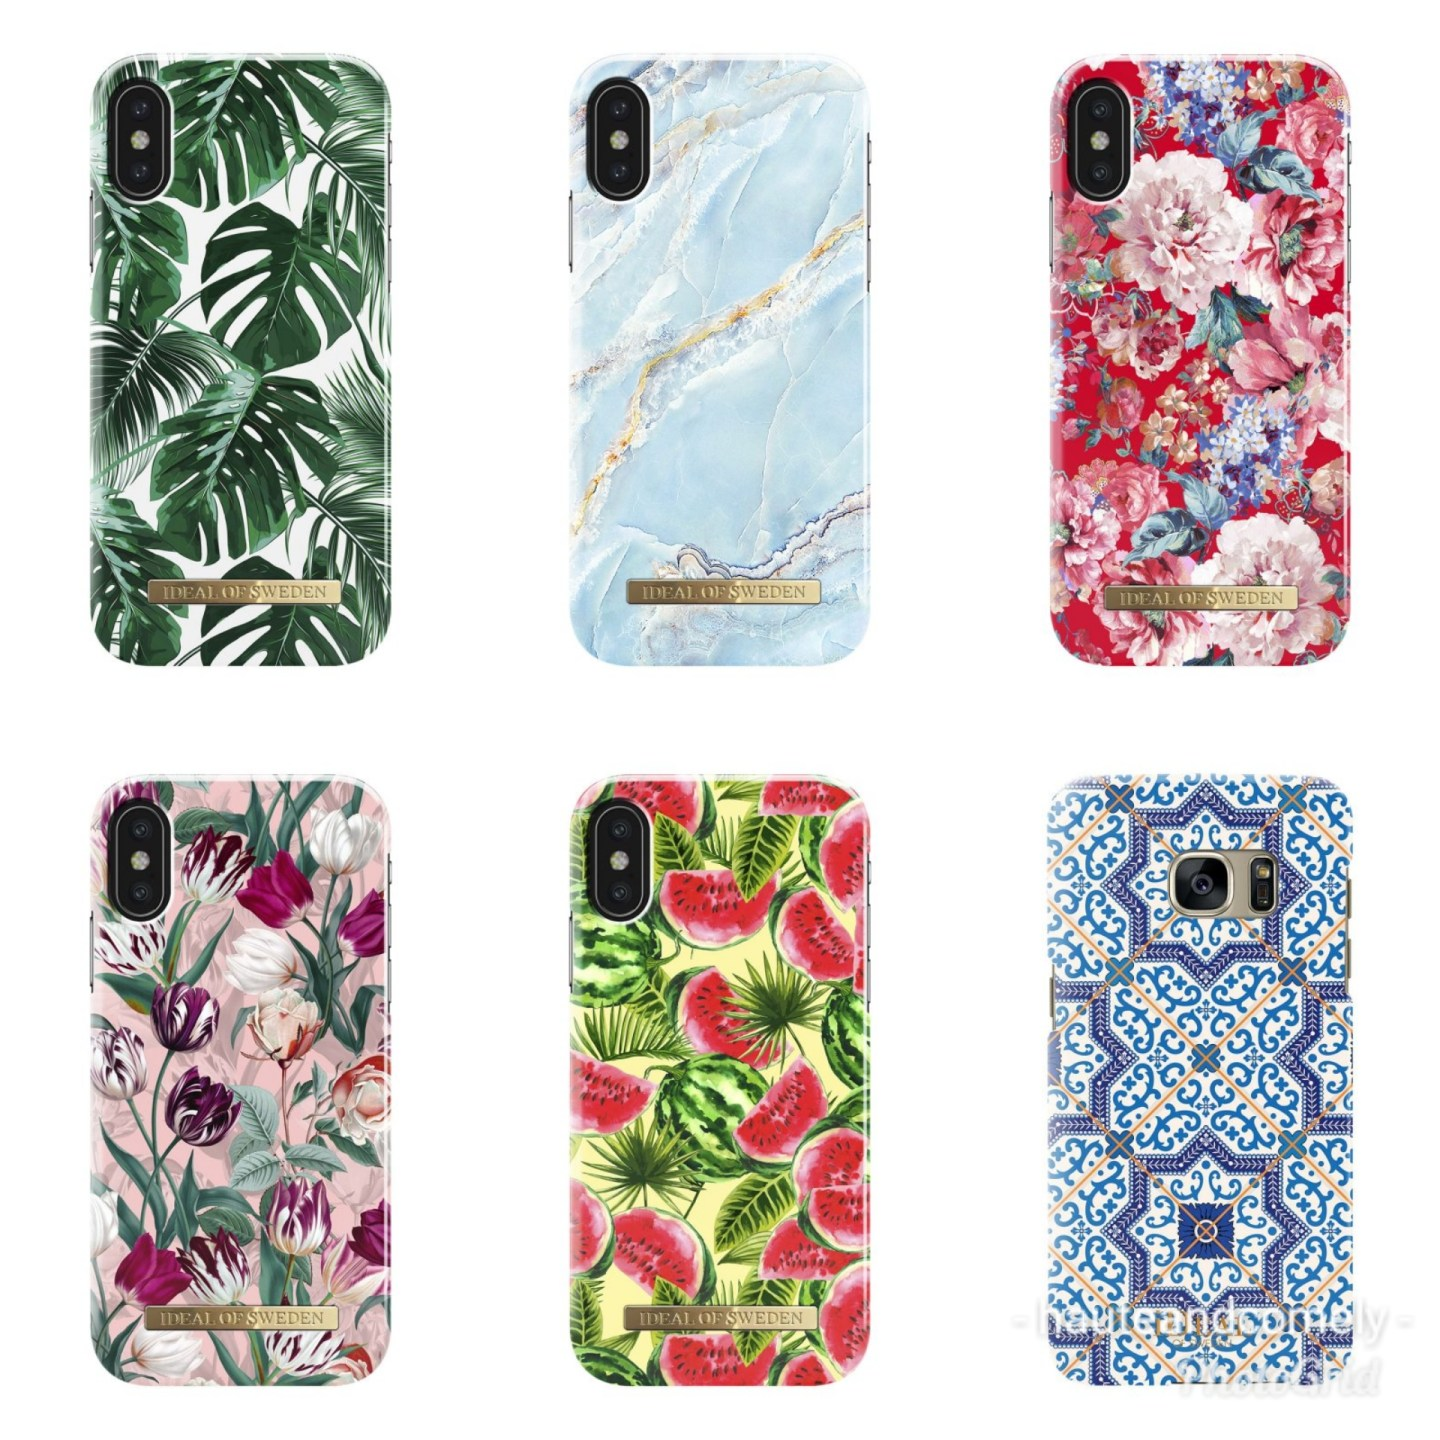 ideal of Sweden phone cases